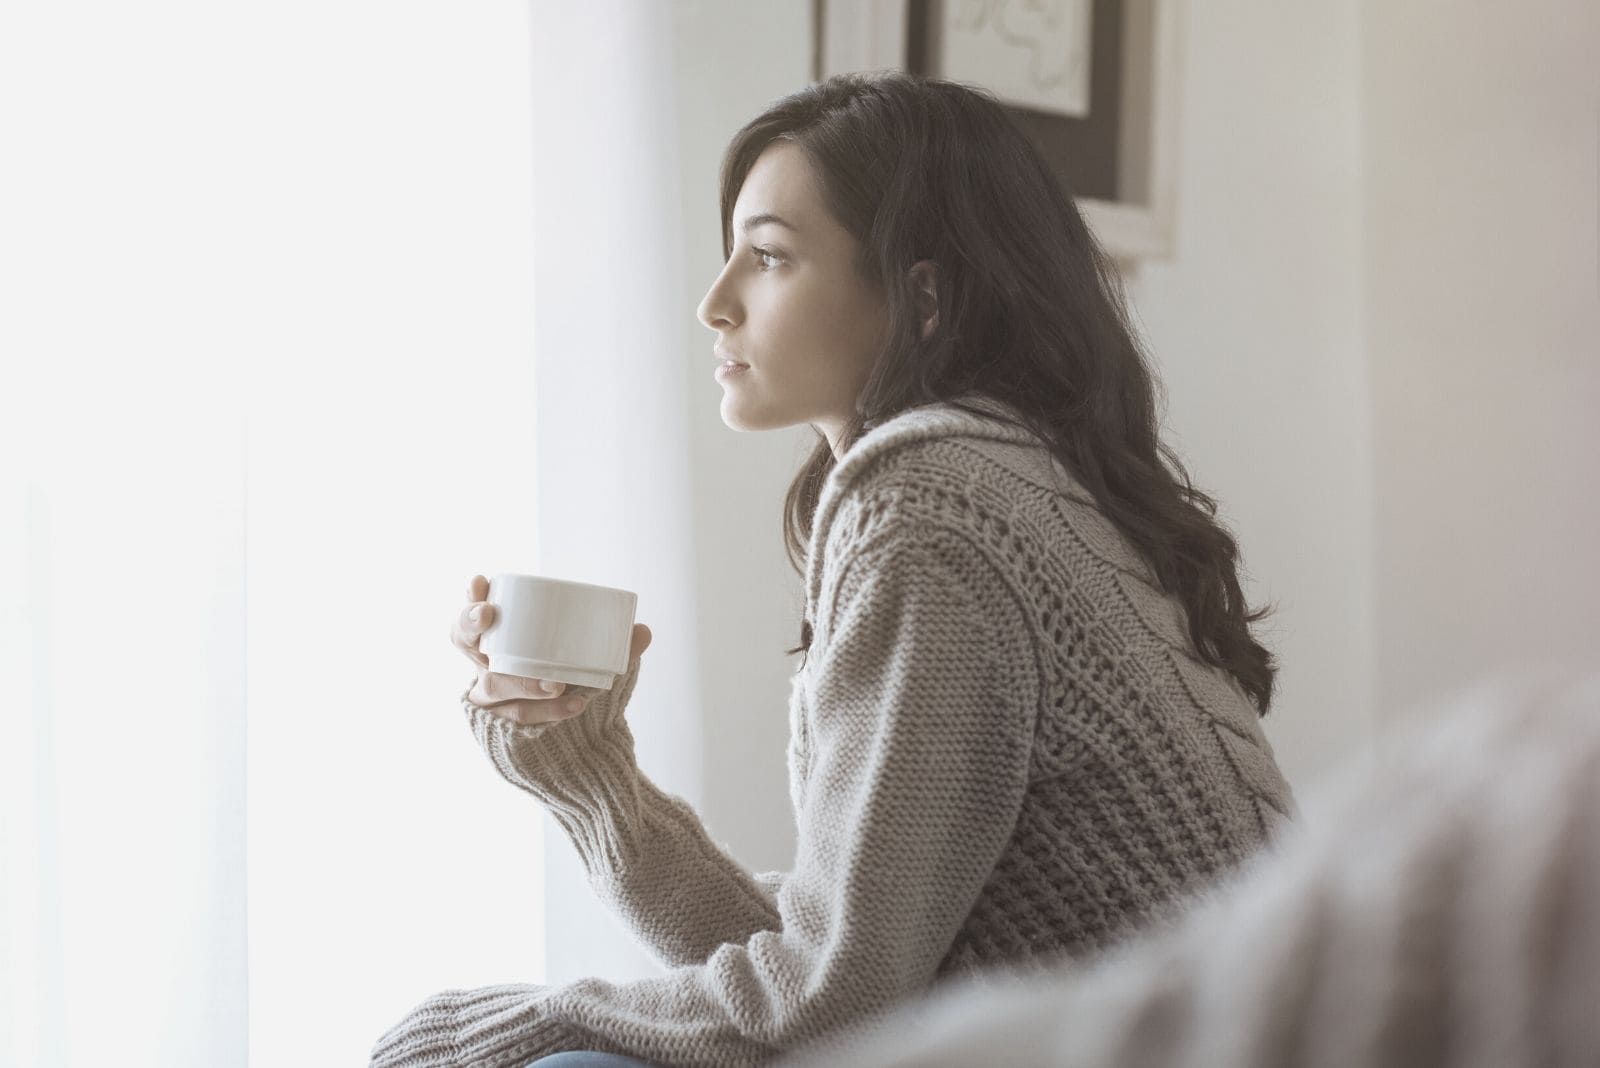 woman thinking at home drinking from a cup sitting on sofa looking far